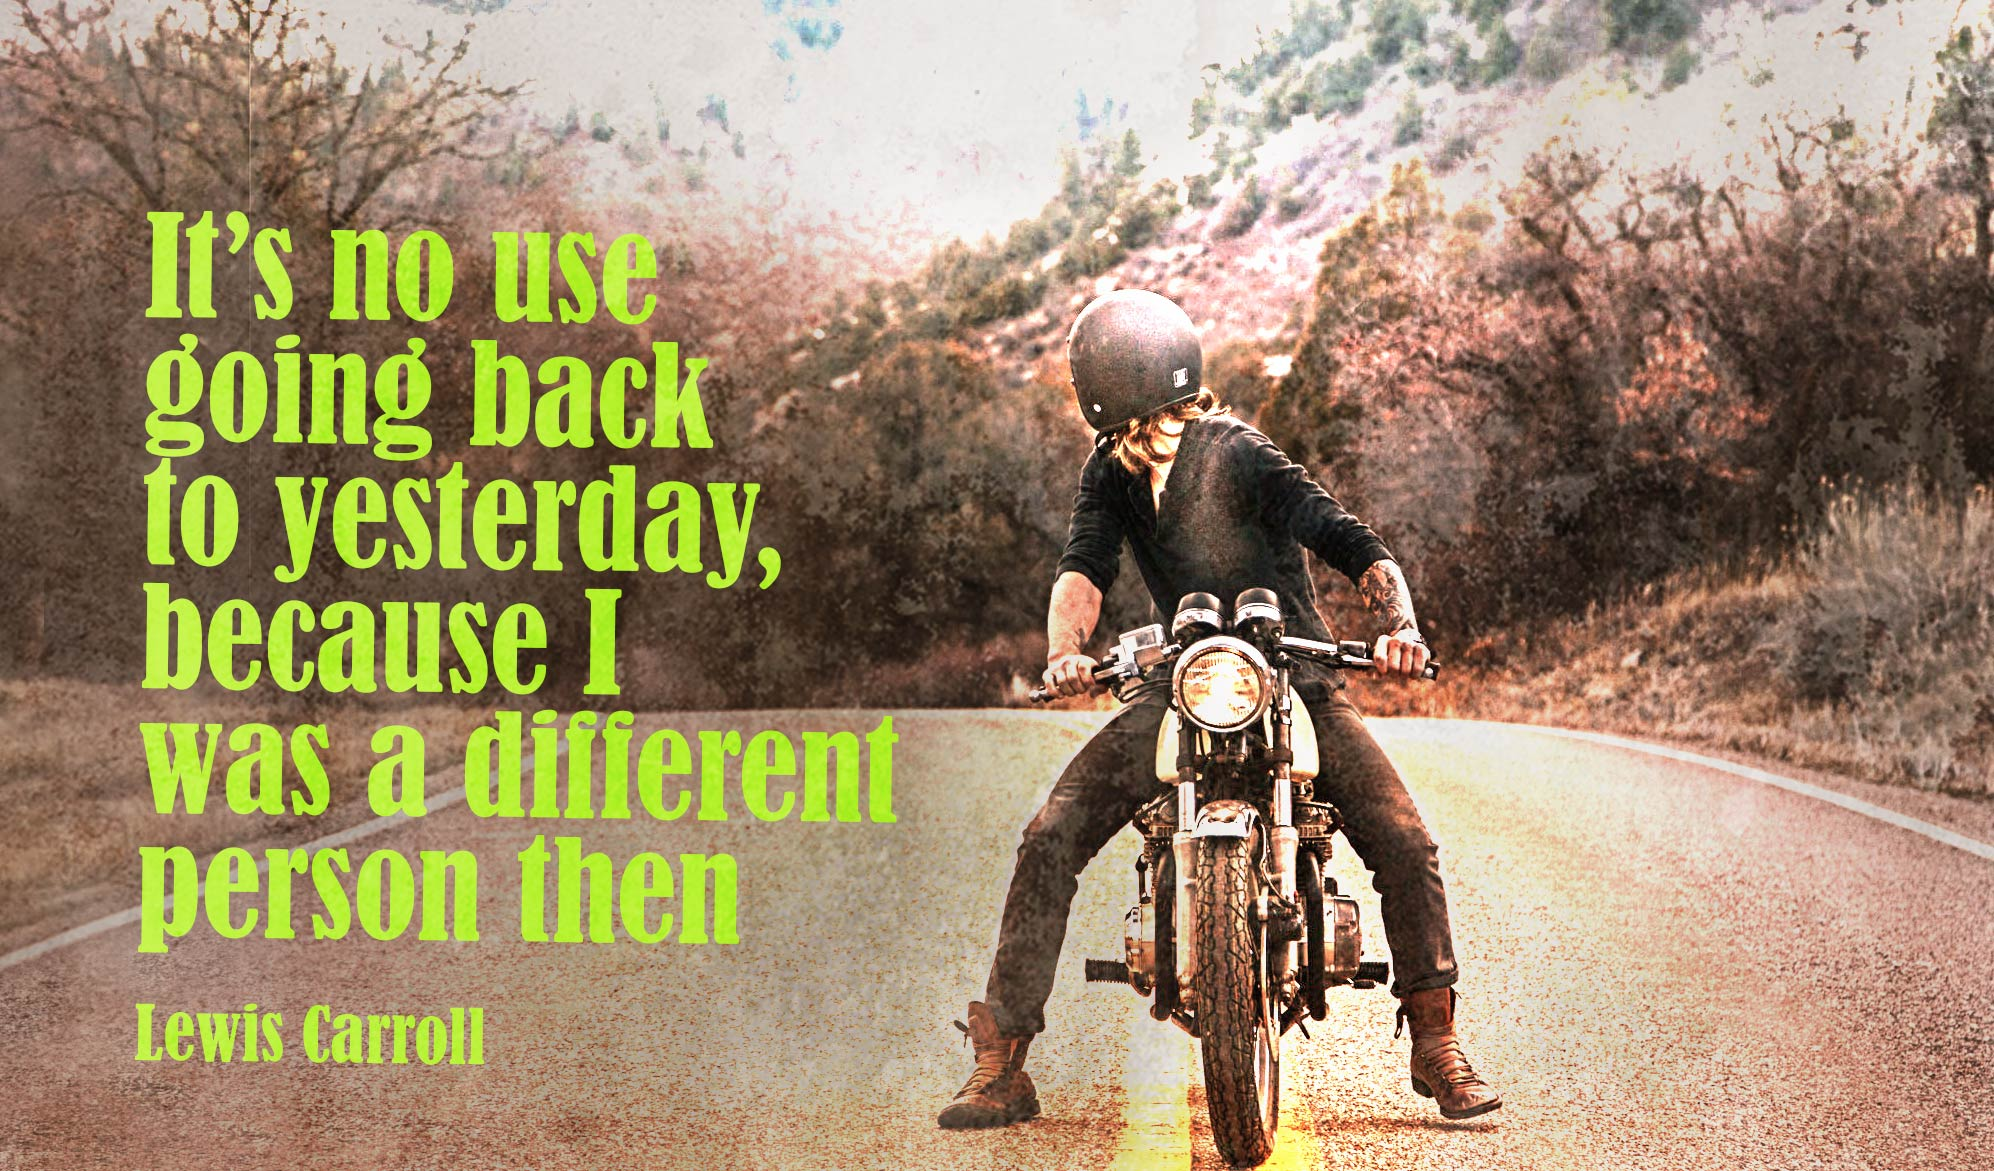 daily inspirational quote image: a man, riding a motorcycle looking back on a mountain road